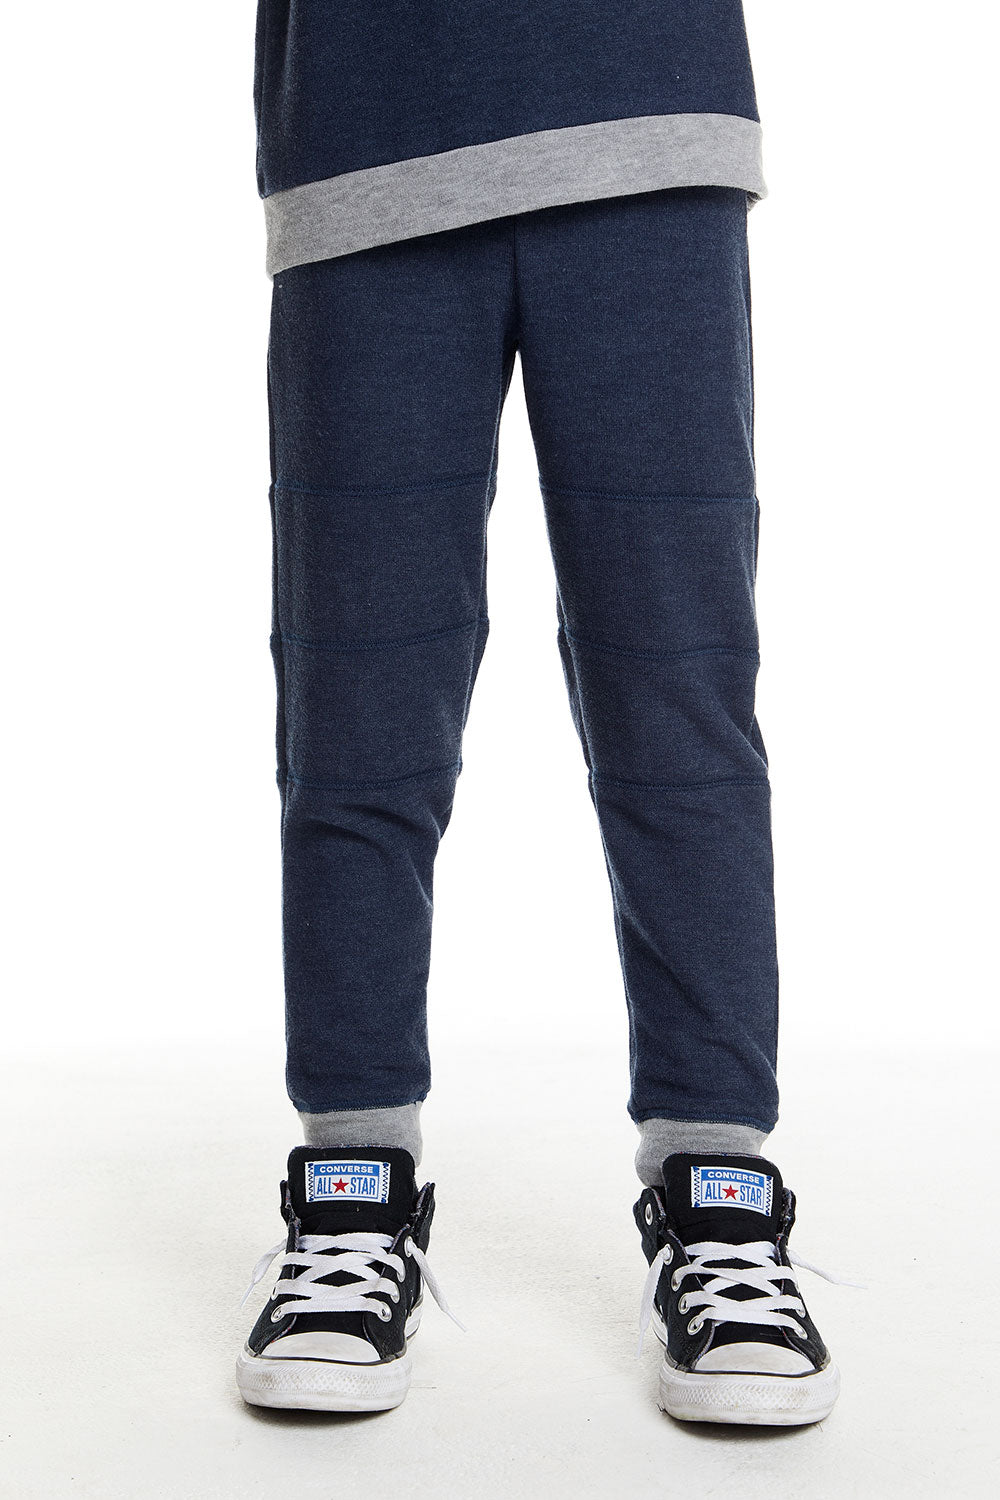 Boys Cozy Knit Contrast Panel Jogger in Avalon Blue BOYS chaserbrand4.myshopify.com